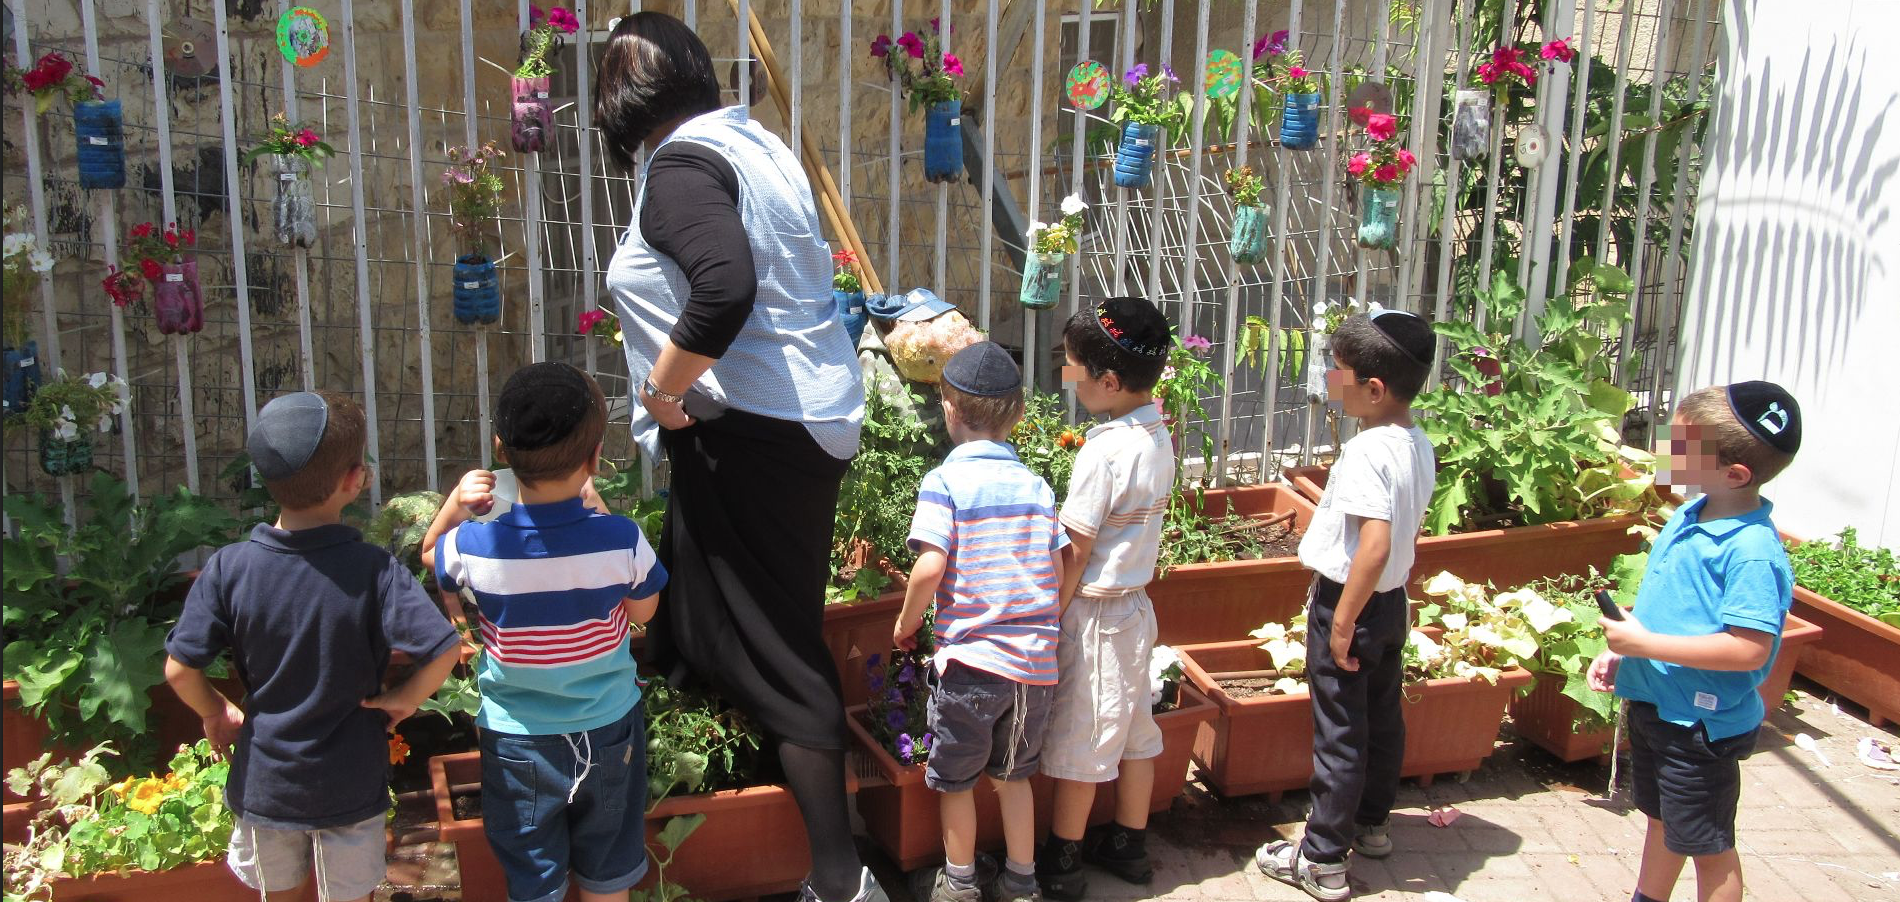 LeShomra in Action: Teaching Haredi Kids To Work With Nature